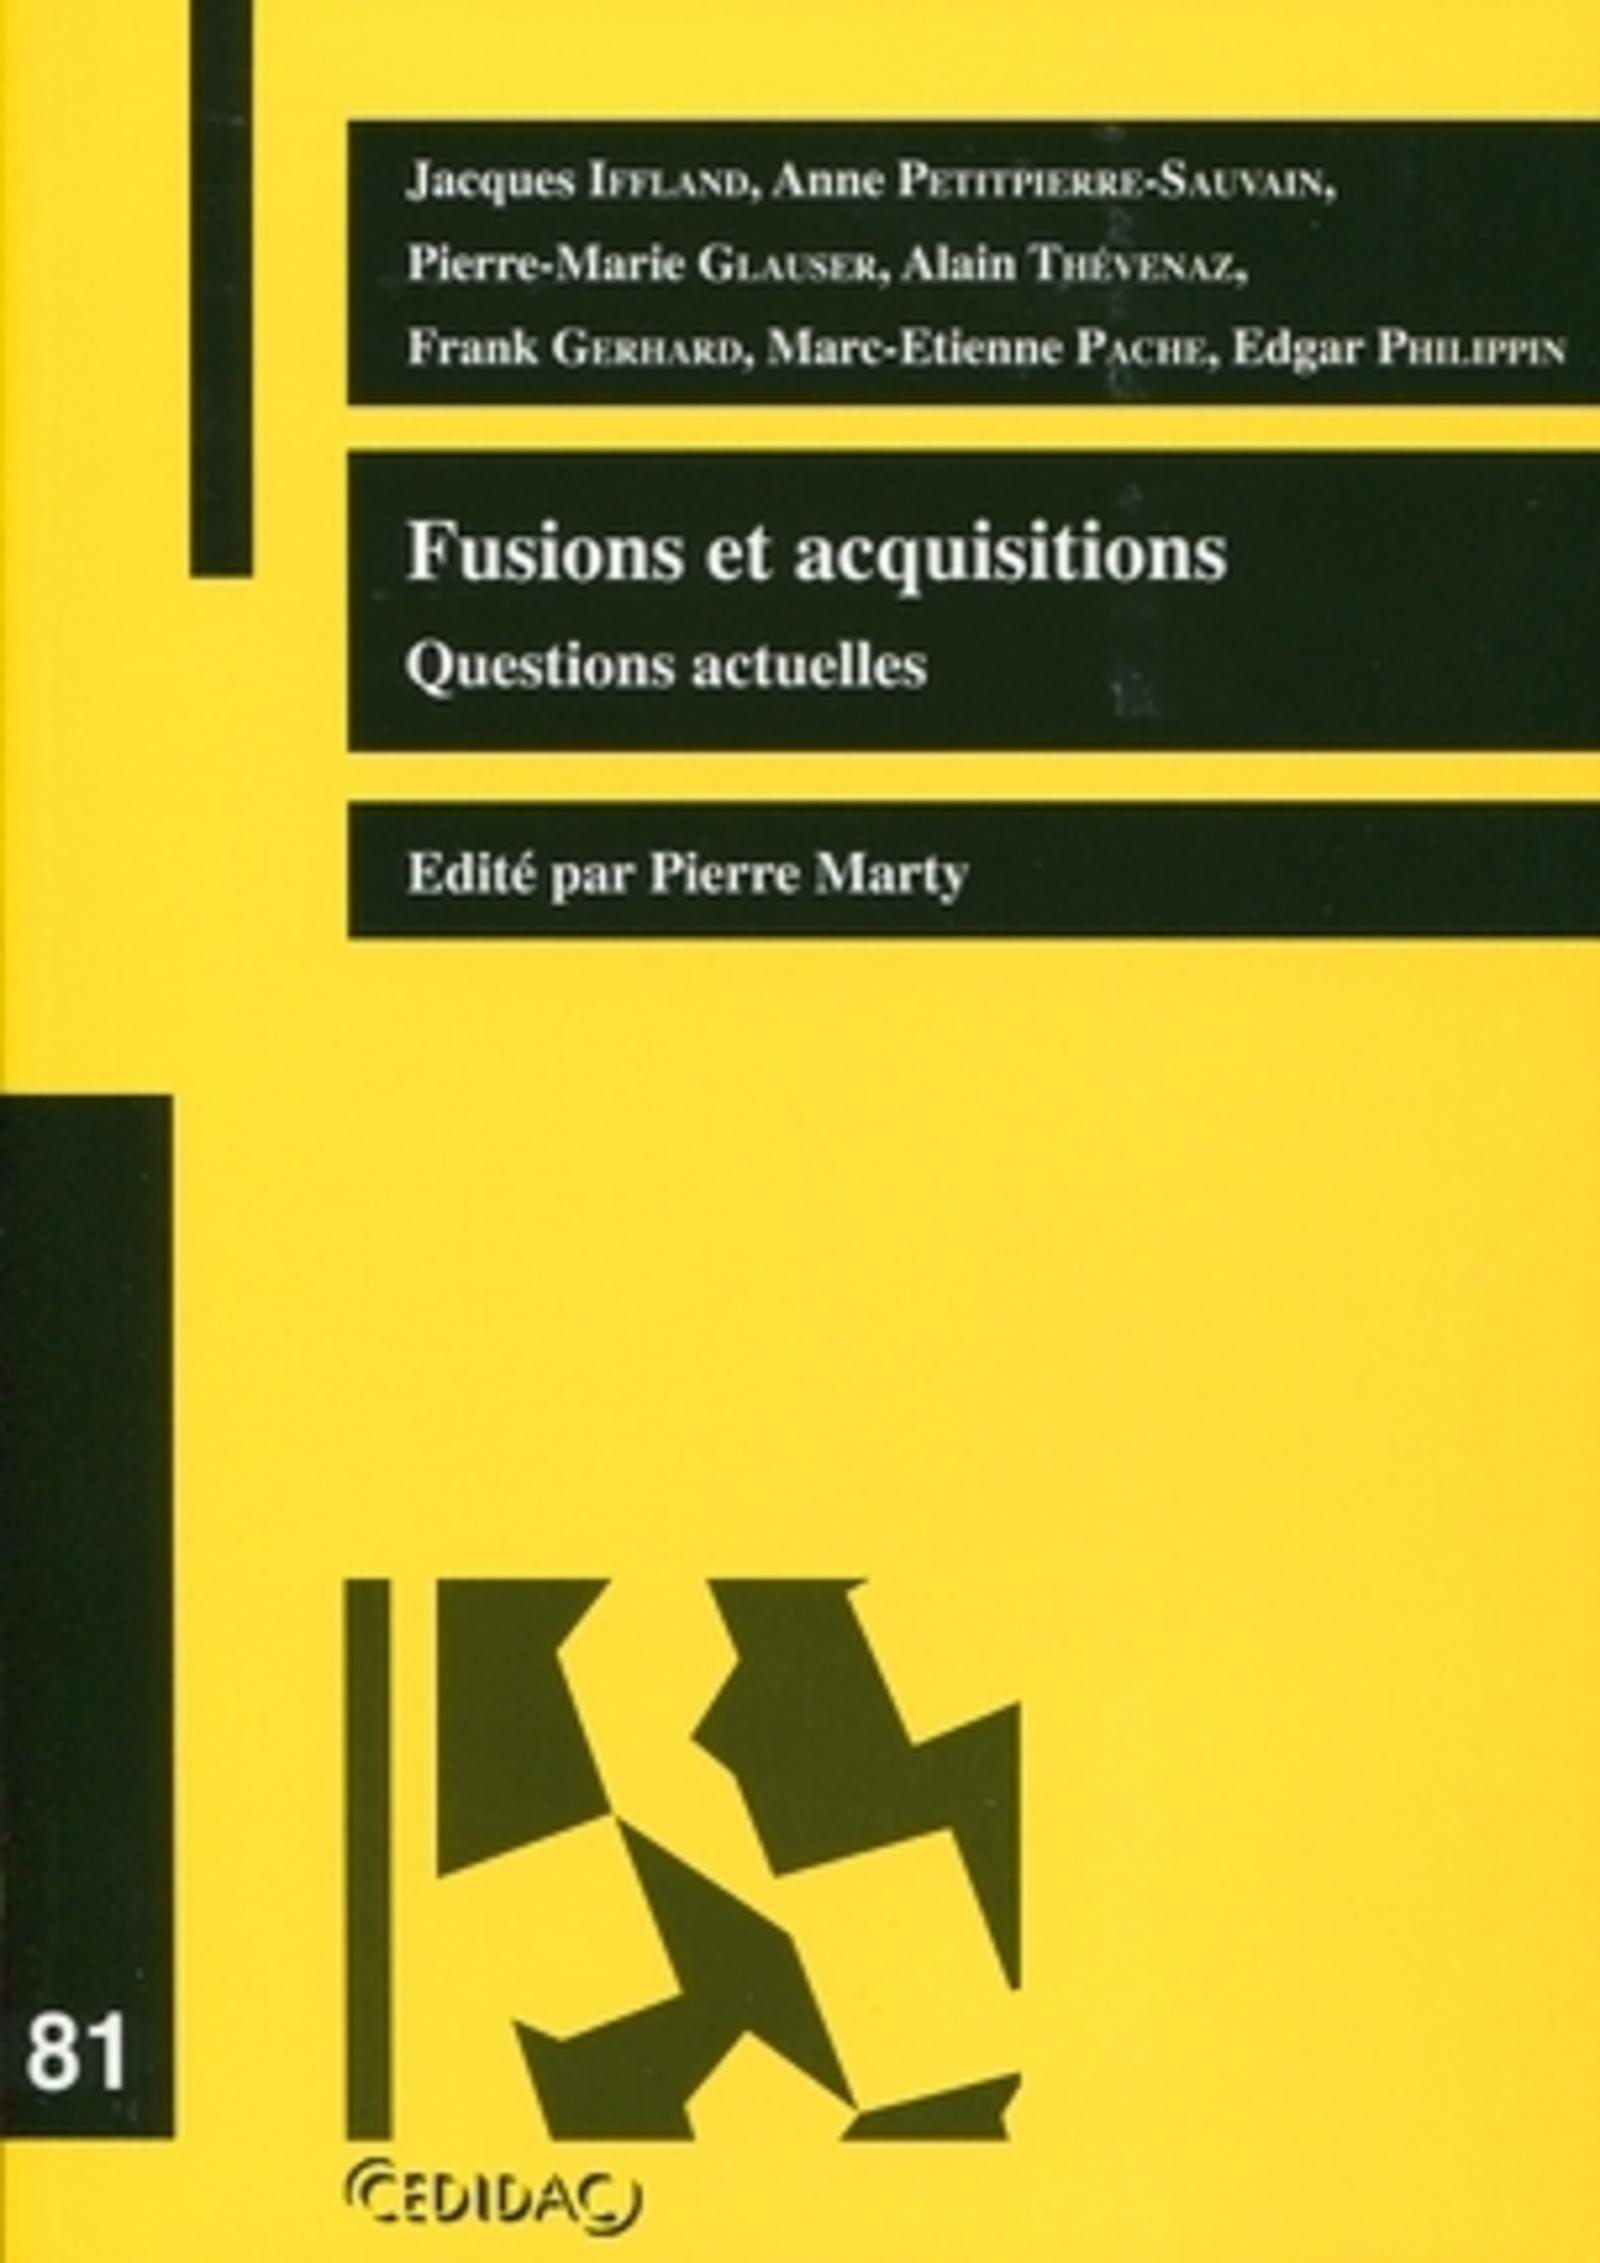 FUSIONS ET ACQUISITIONS. QUESTIONS ACTUELLES